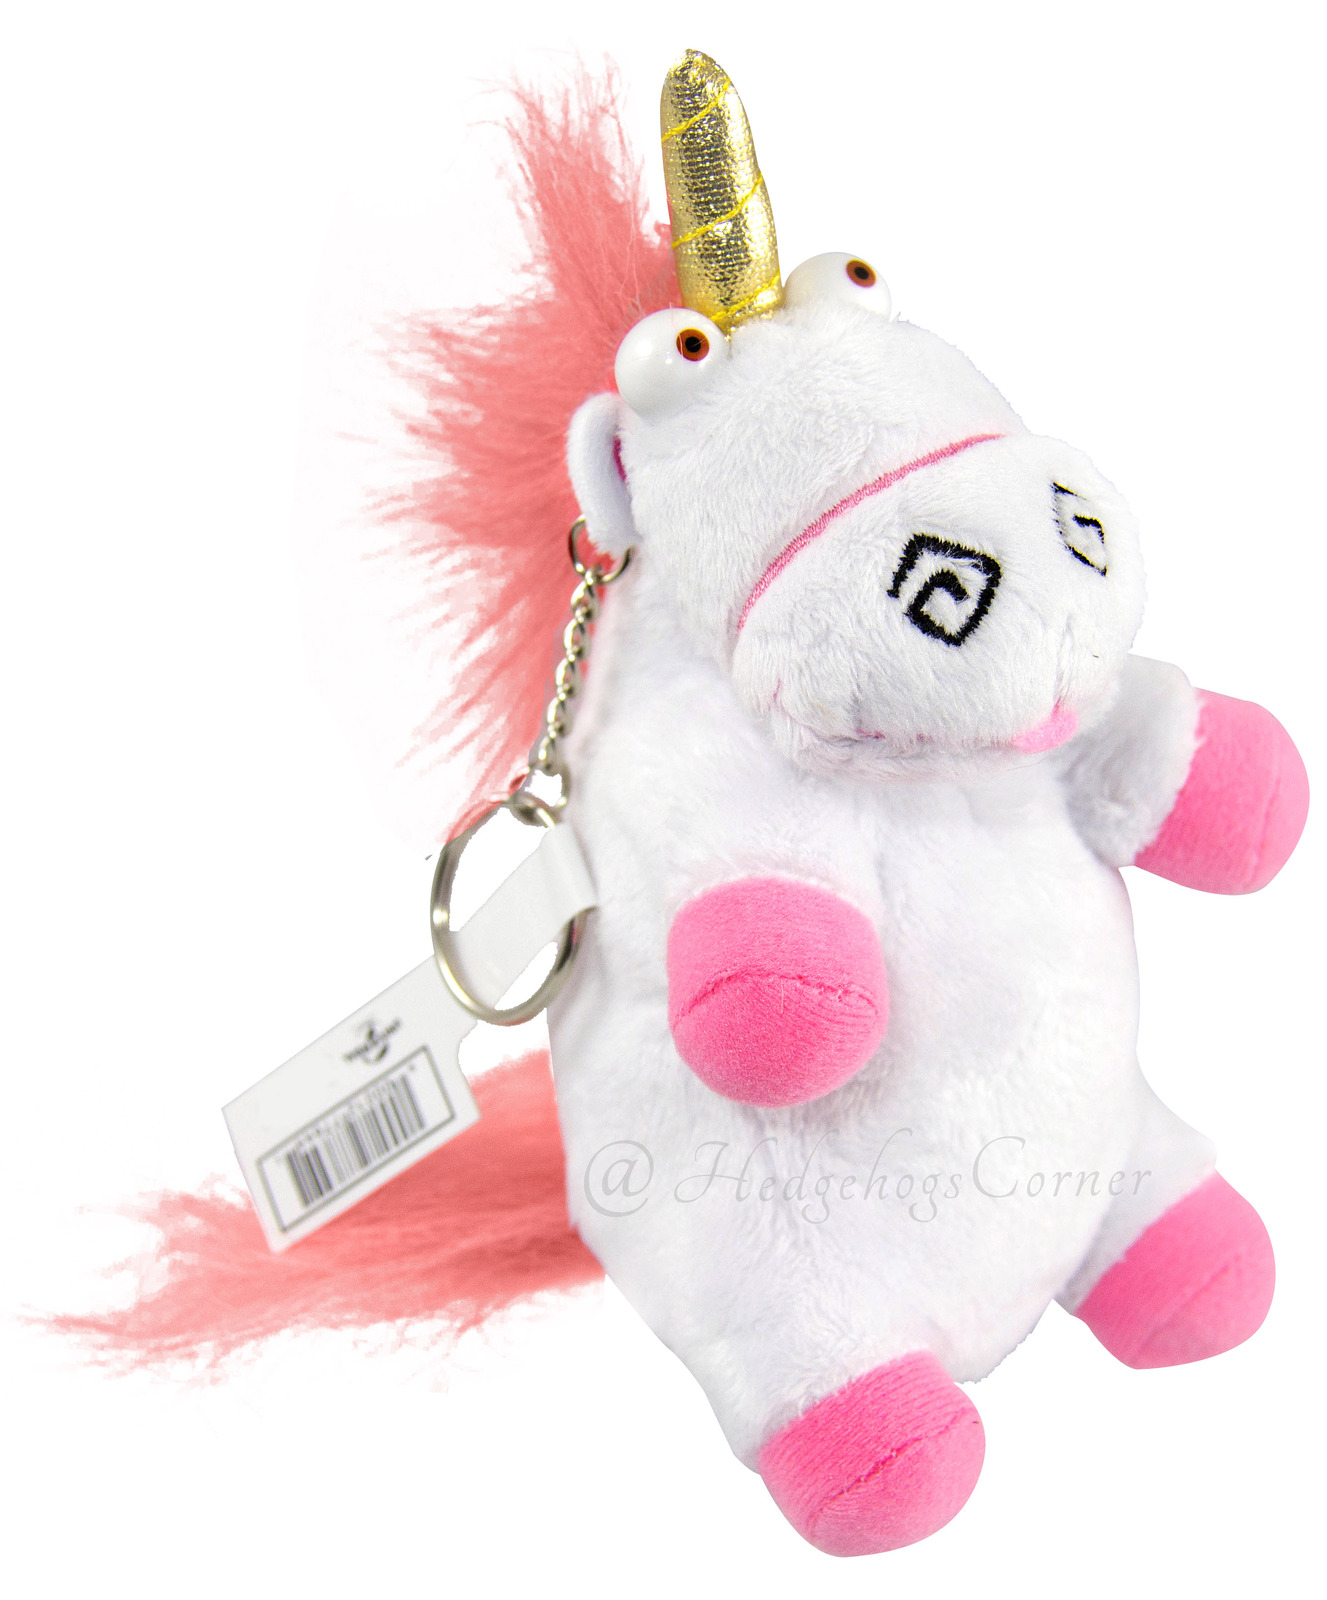 Despicable Me Universal Studios Parks Plush Keychain It S So Fluffy Unicorn